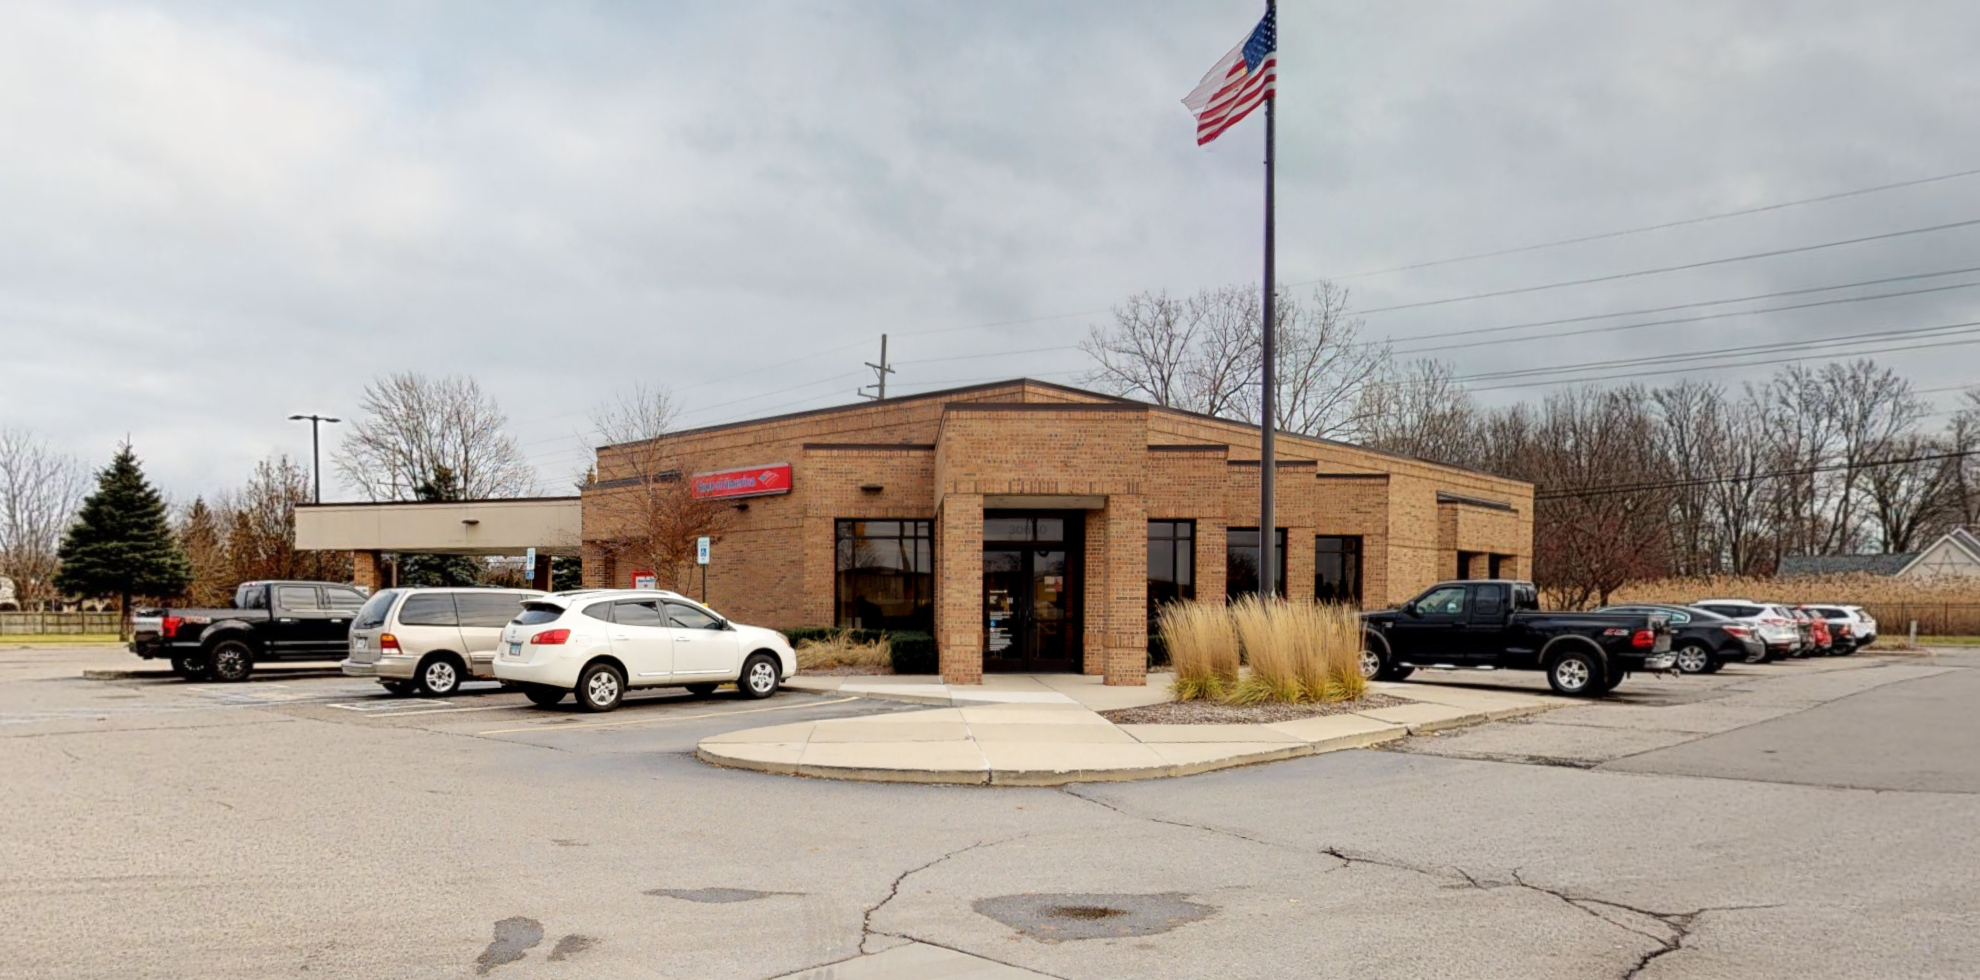 Bank of America financial center with drive-thru ATM | 30650 23 Mile Rd, Chesterfield Twp, MI 48047